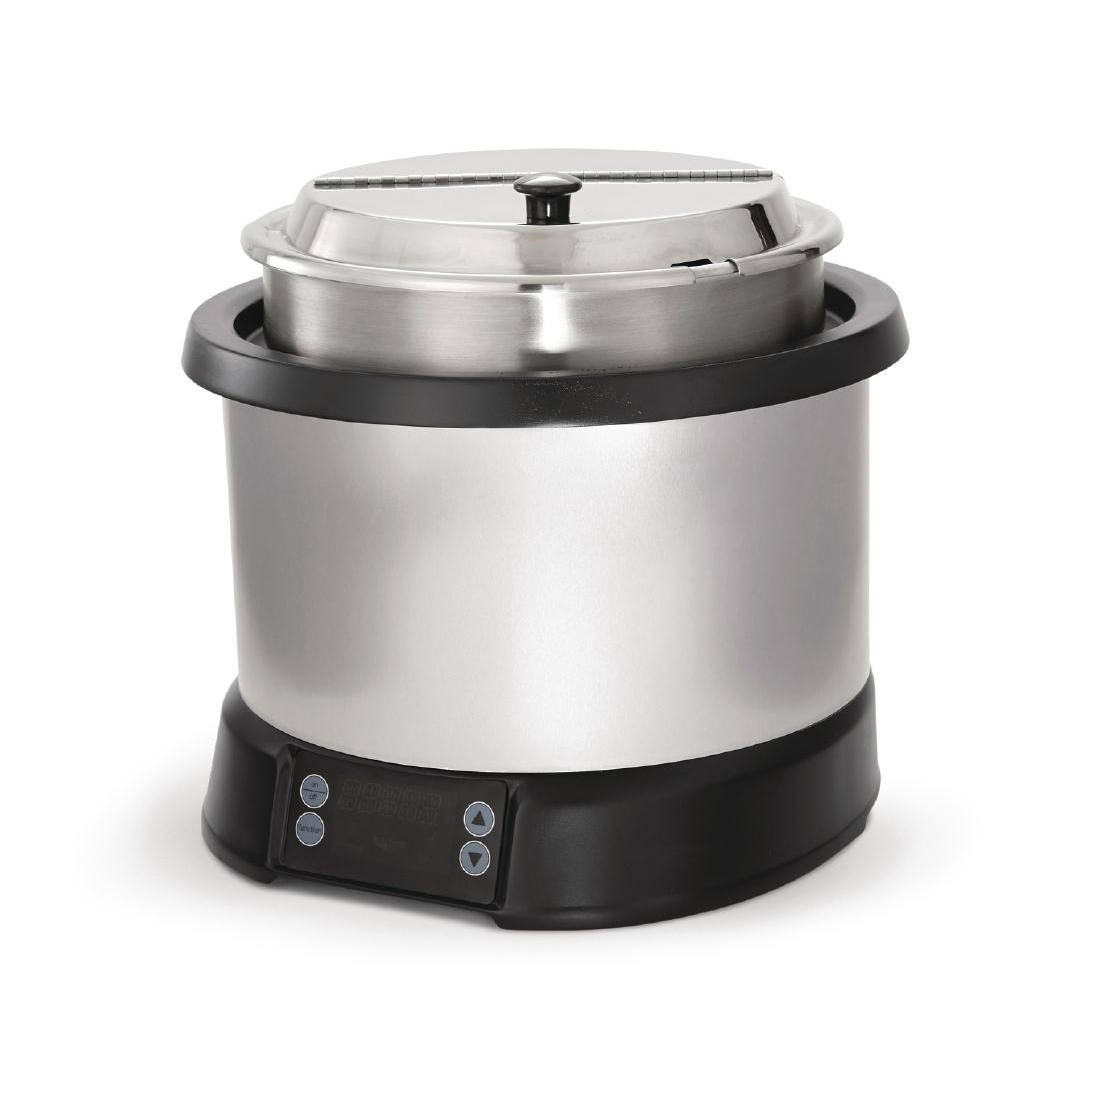 Vollrath Mirage Induction Heat and Hold Soup Kettle